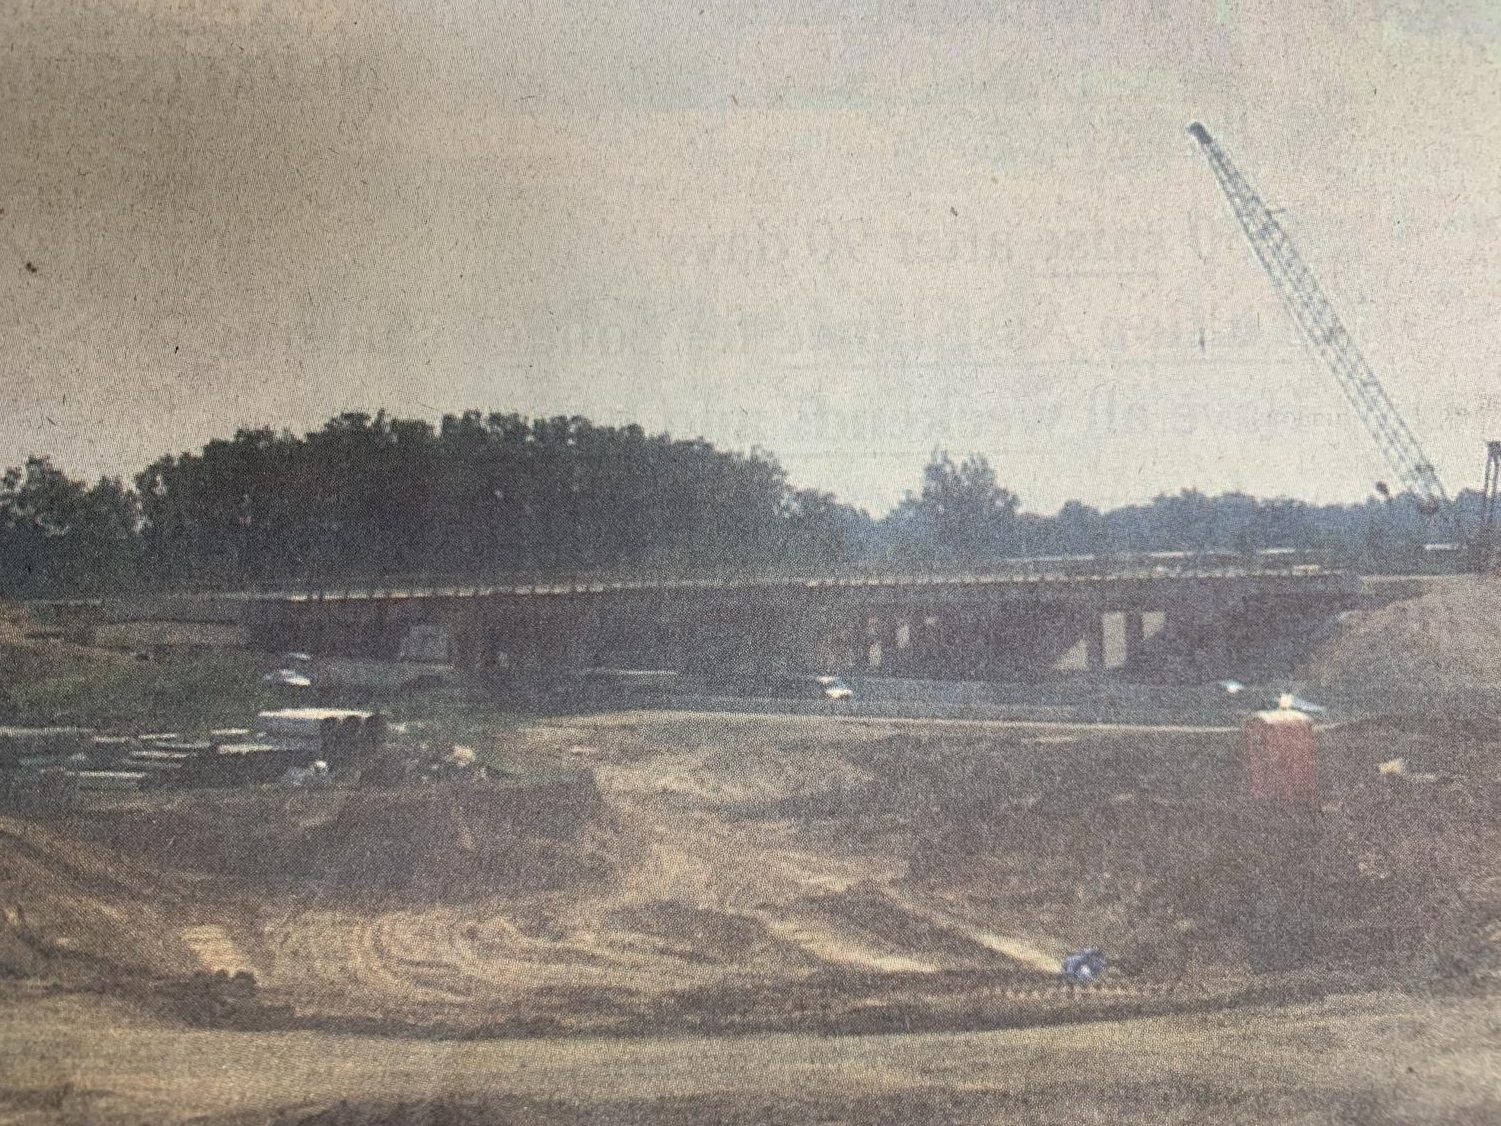 Oakland students in 2004 were plagued by the same construction problems students face today. At the time, three new construction projects were planned along I-75.